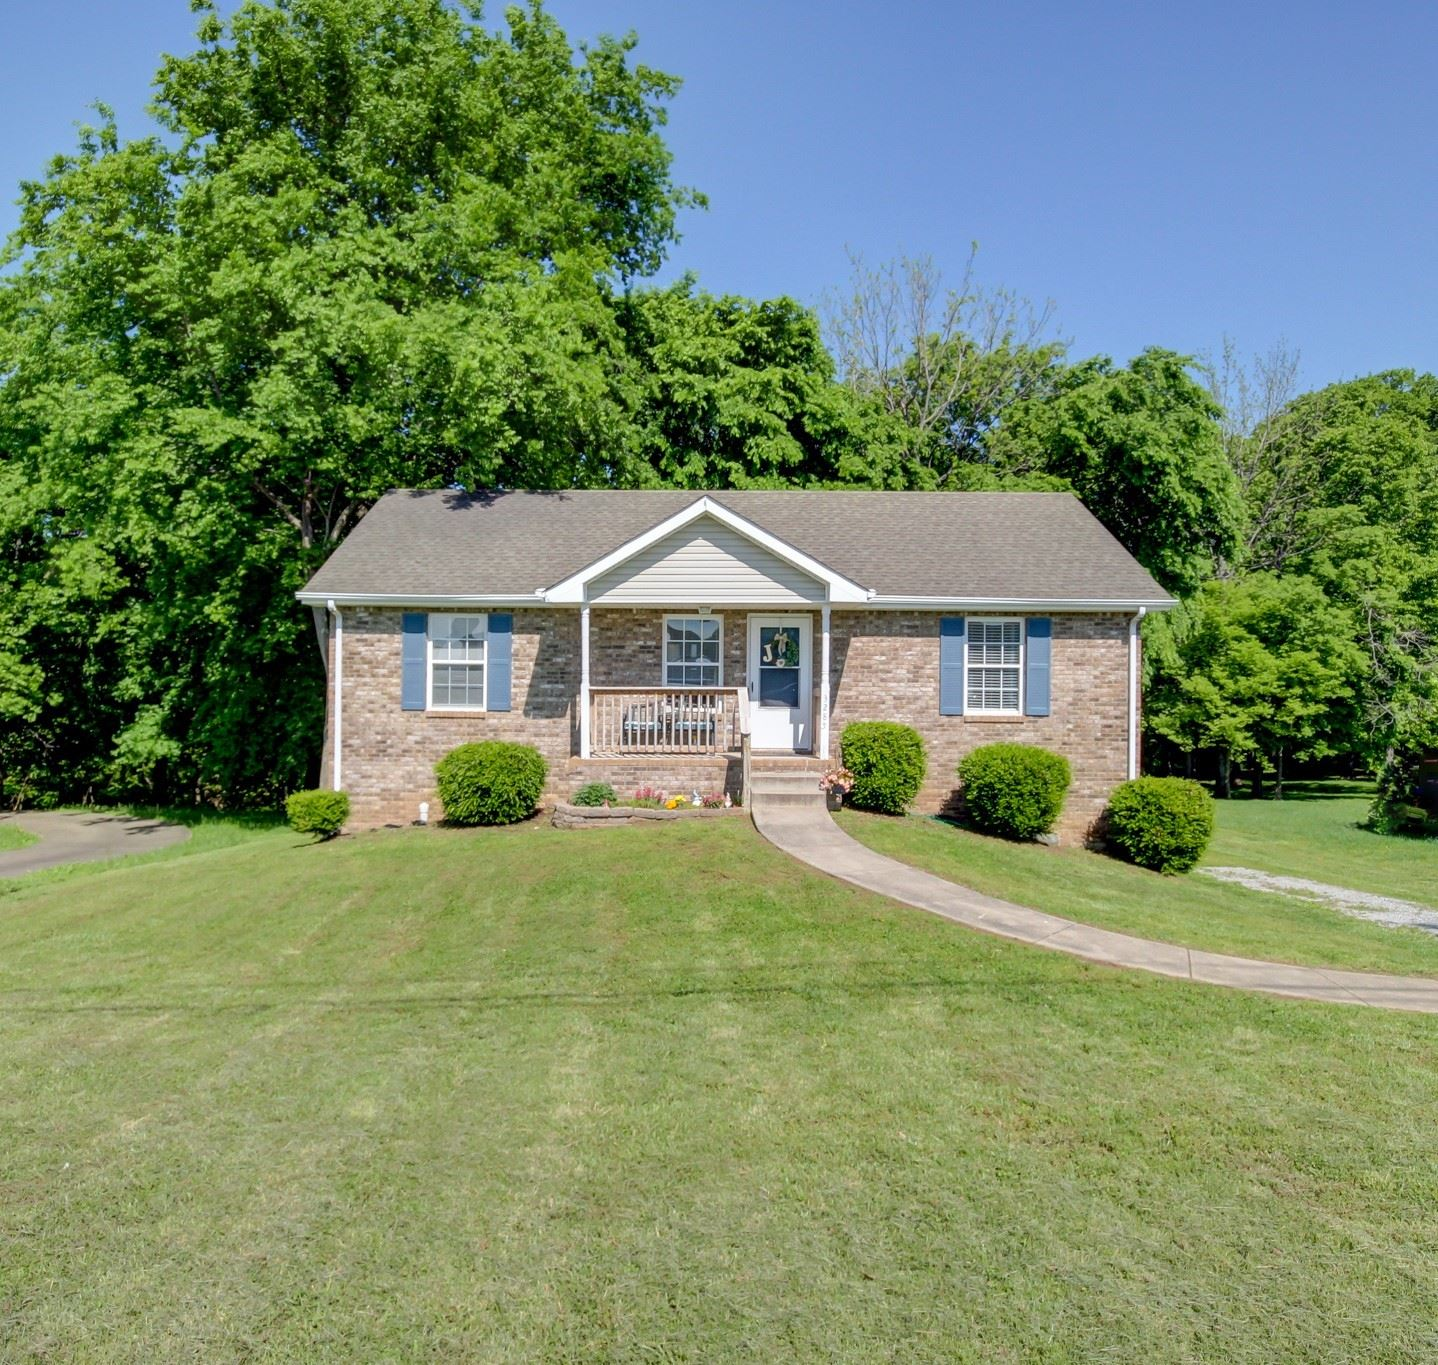 3285 N Senseney Cir, Clarksville, TN 37042 - MLS#: 2253886